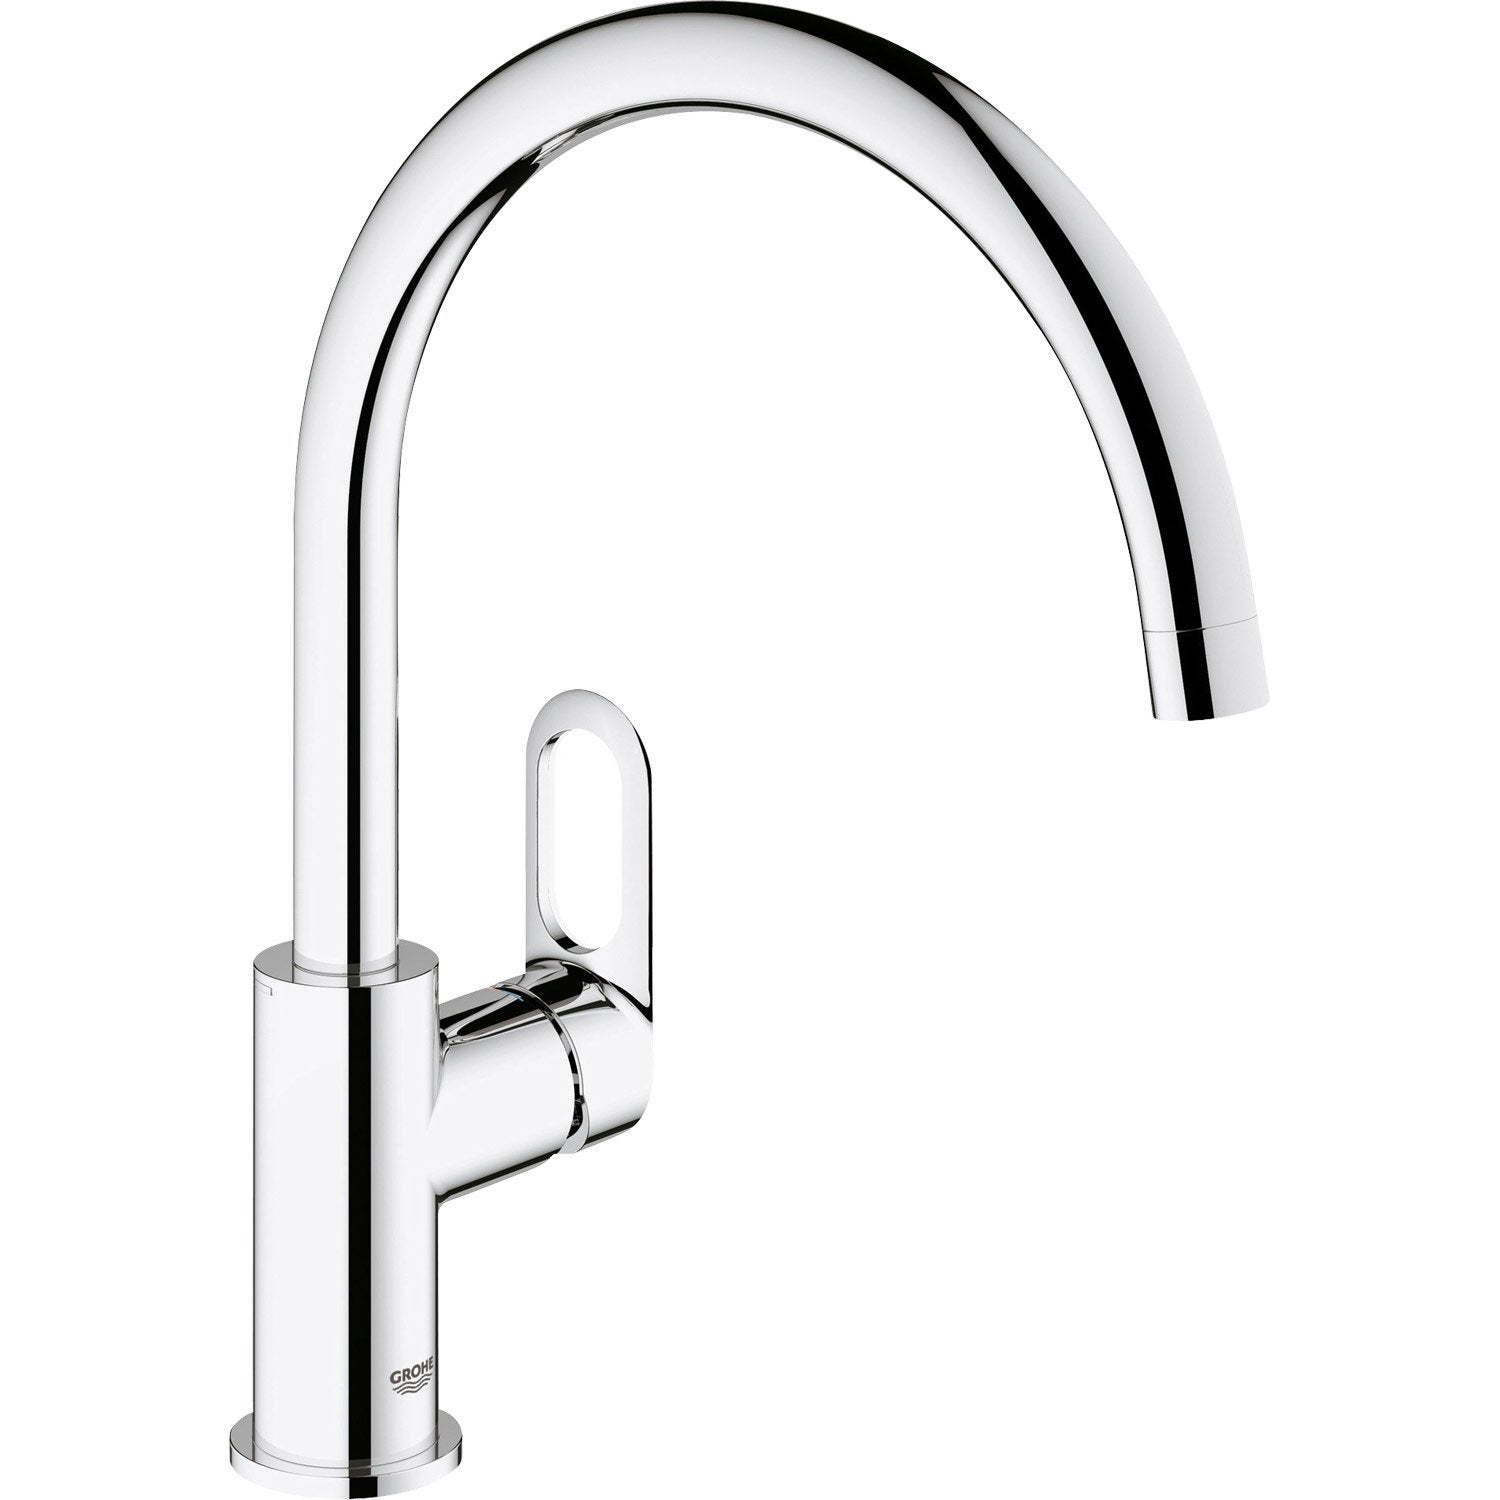 Mitigeur de cuisine chromé GROHE Start loop